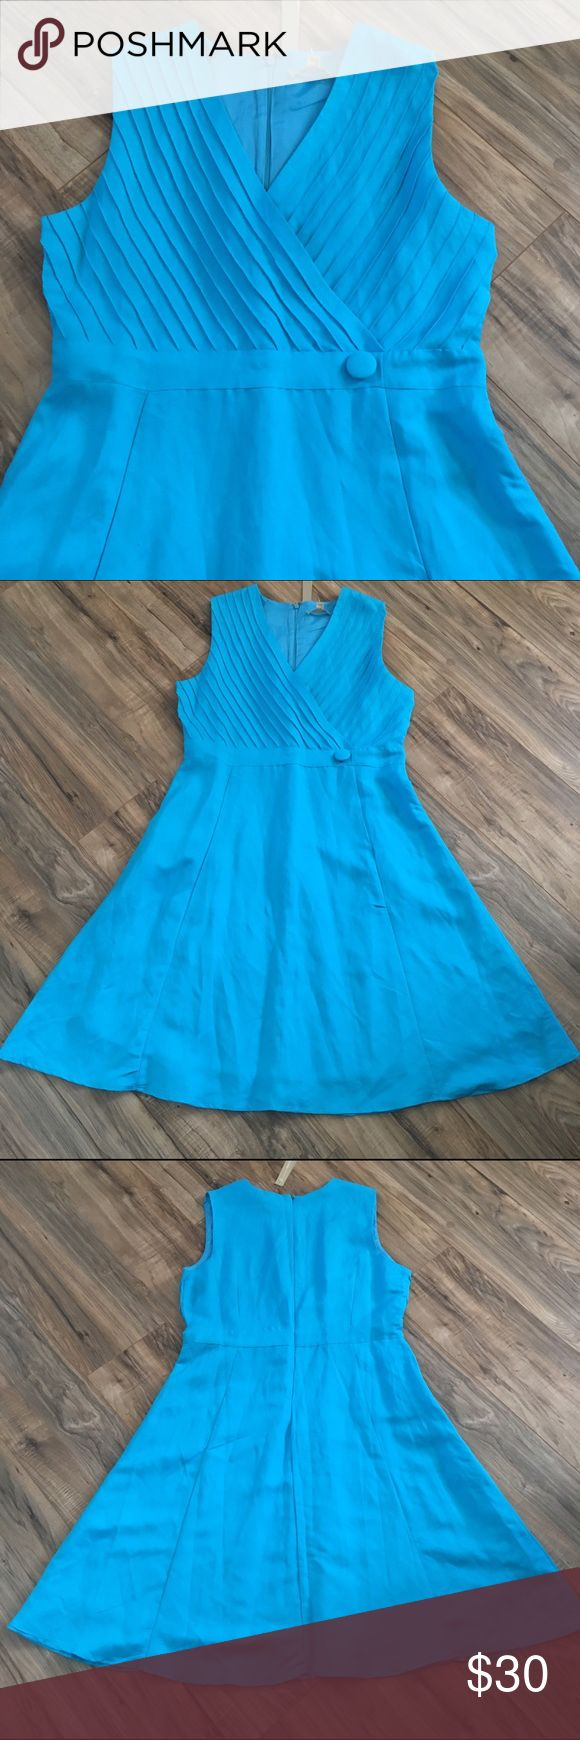 Appraisal women's blue sundress New appraisal blue sundress NWT appraisal  Dresses